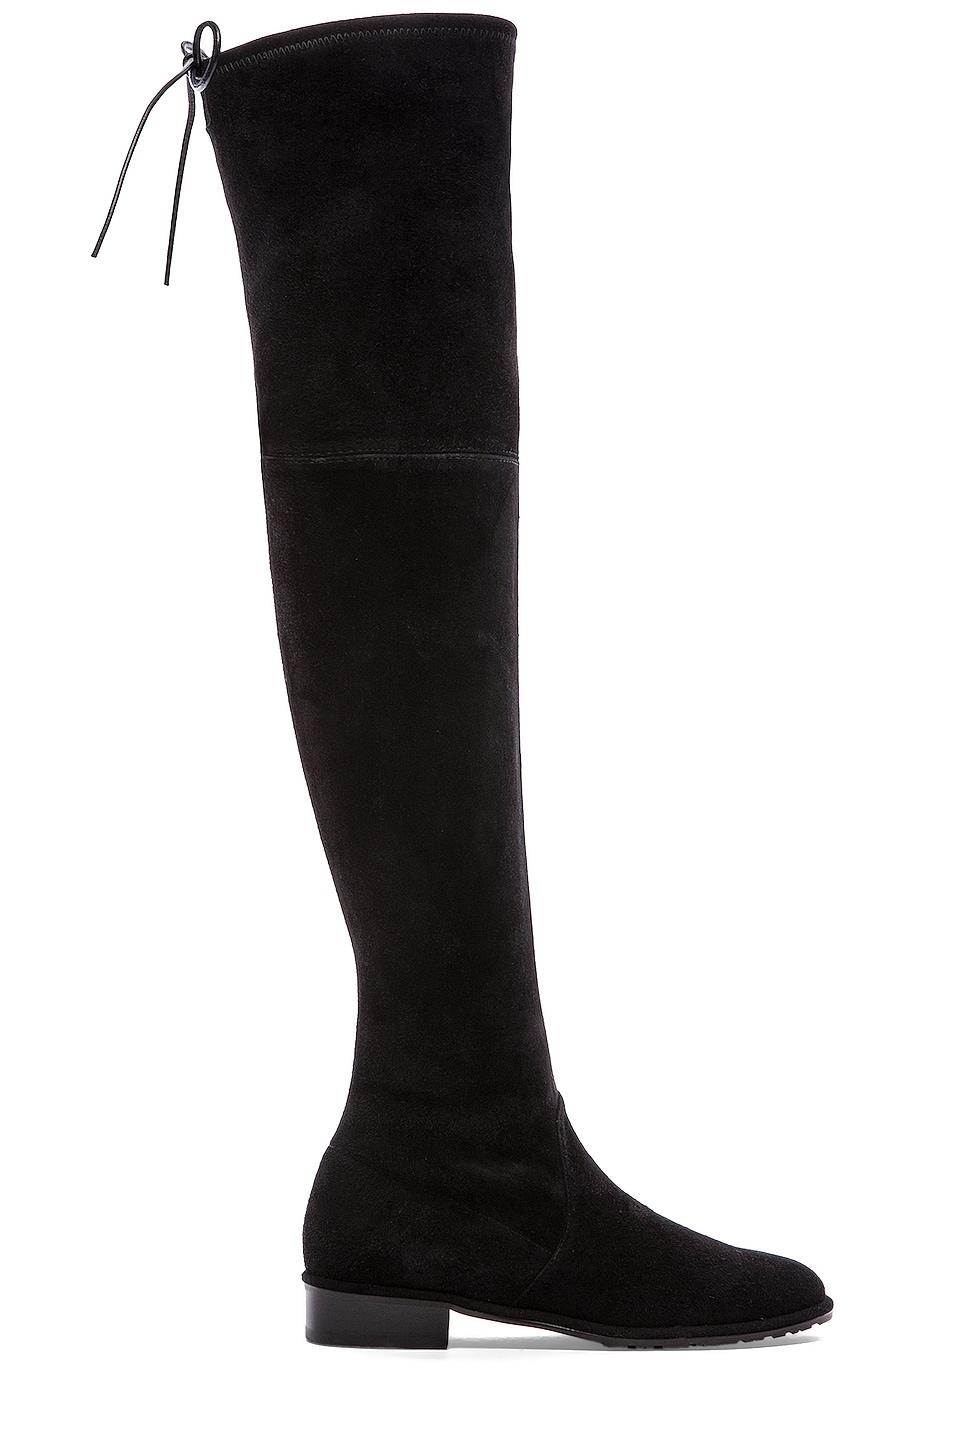 Stuart Weitzman Women's Lowland Stretch Suede Over-The-Knee Boots In Black Suede